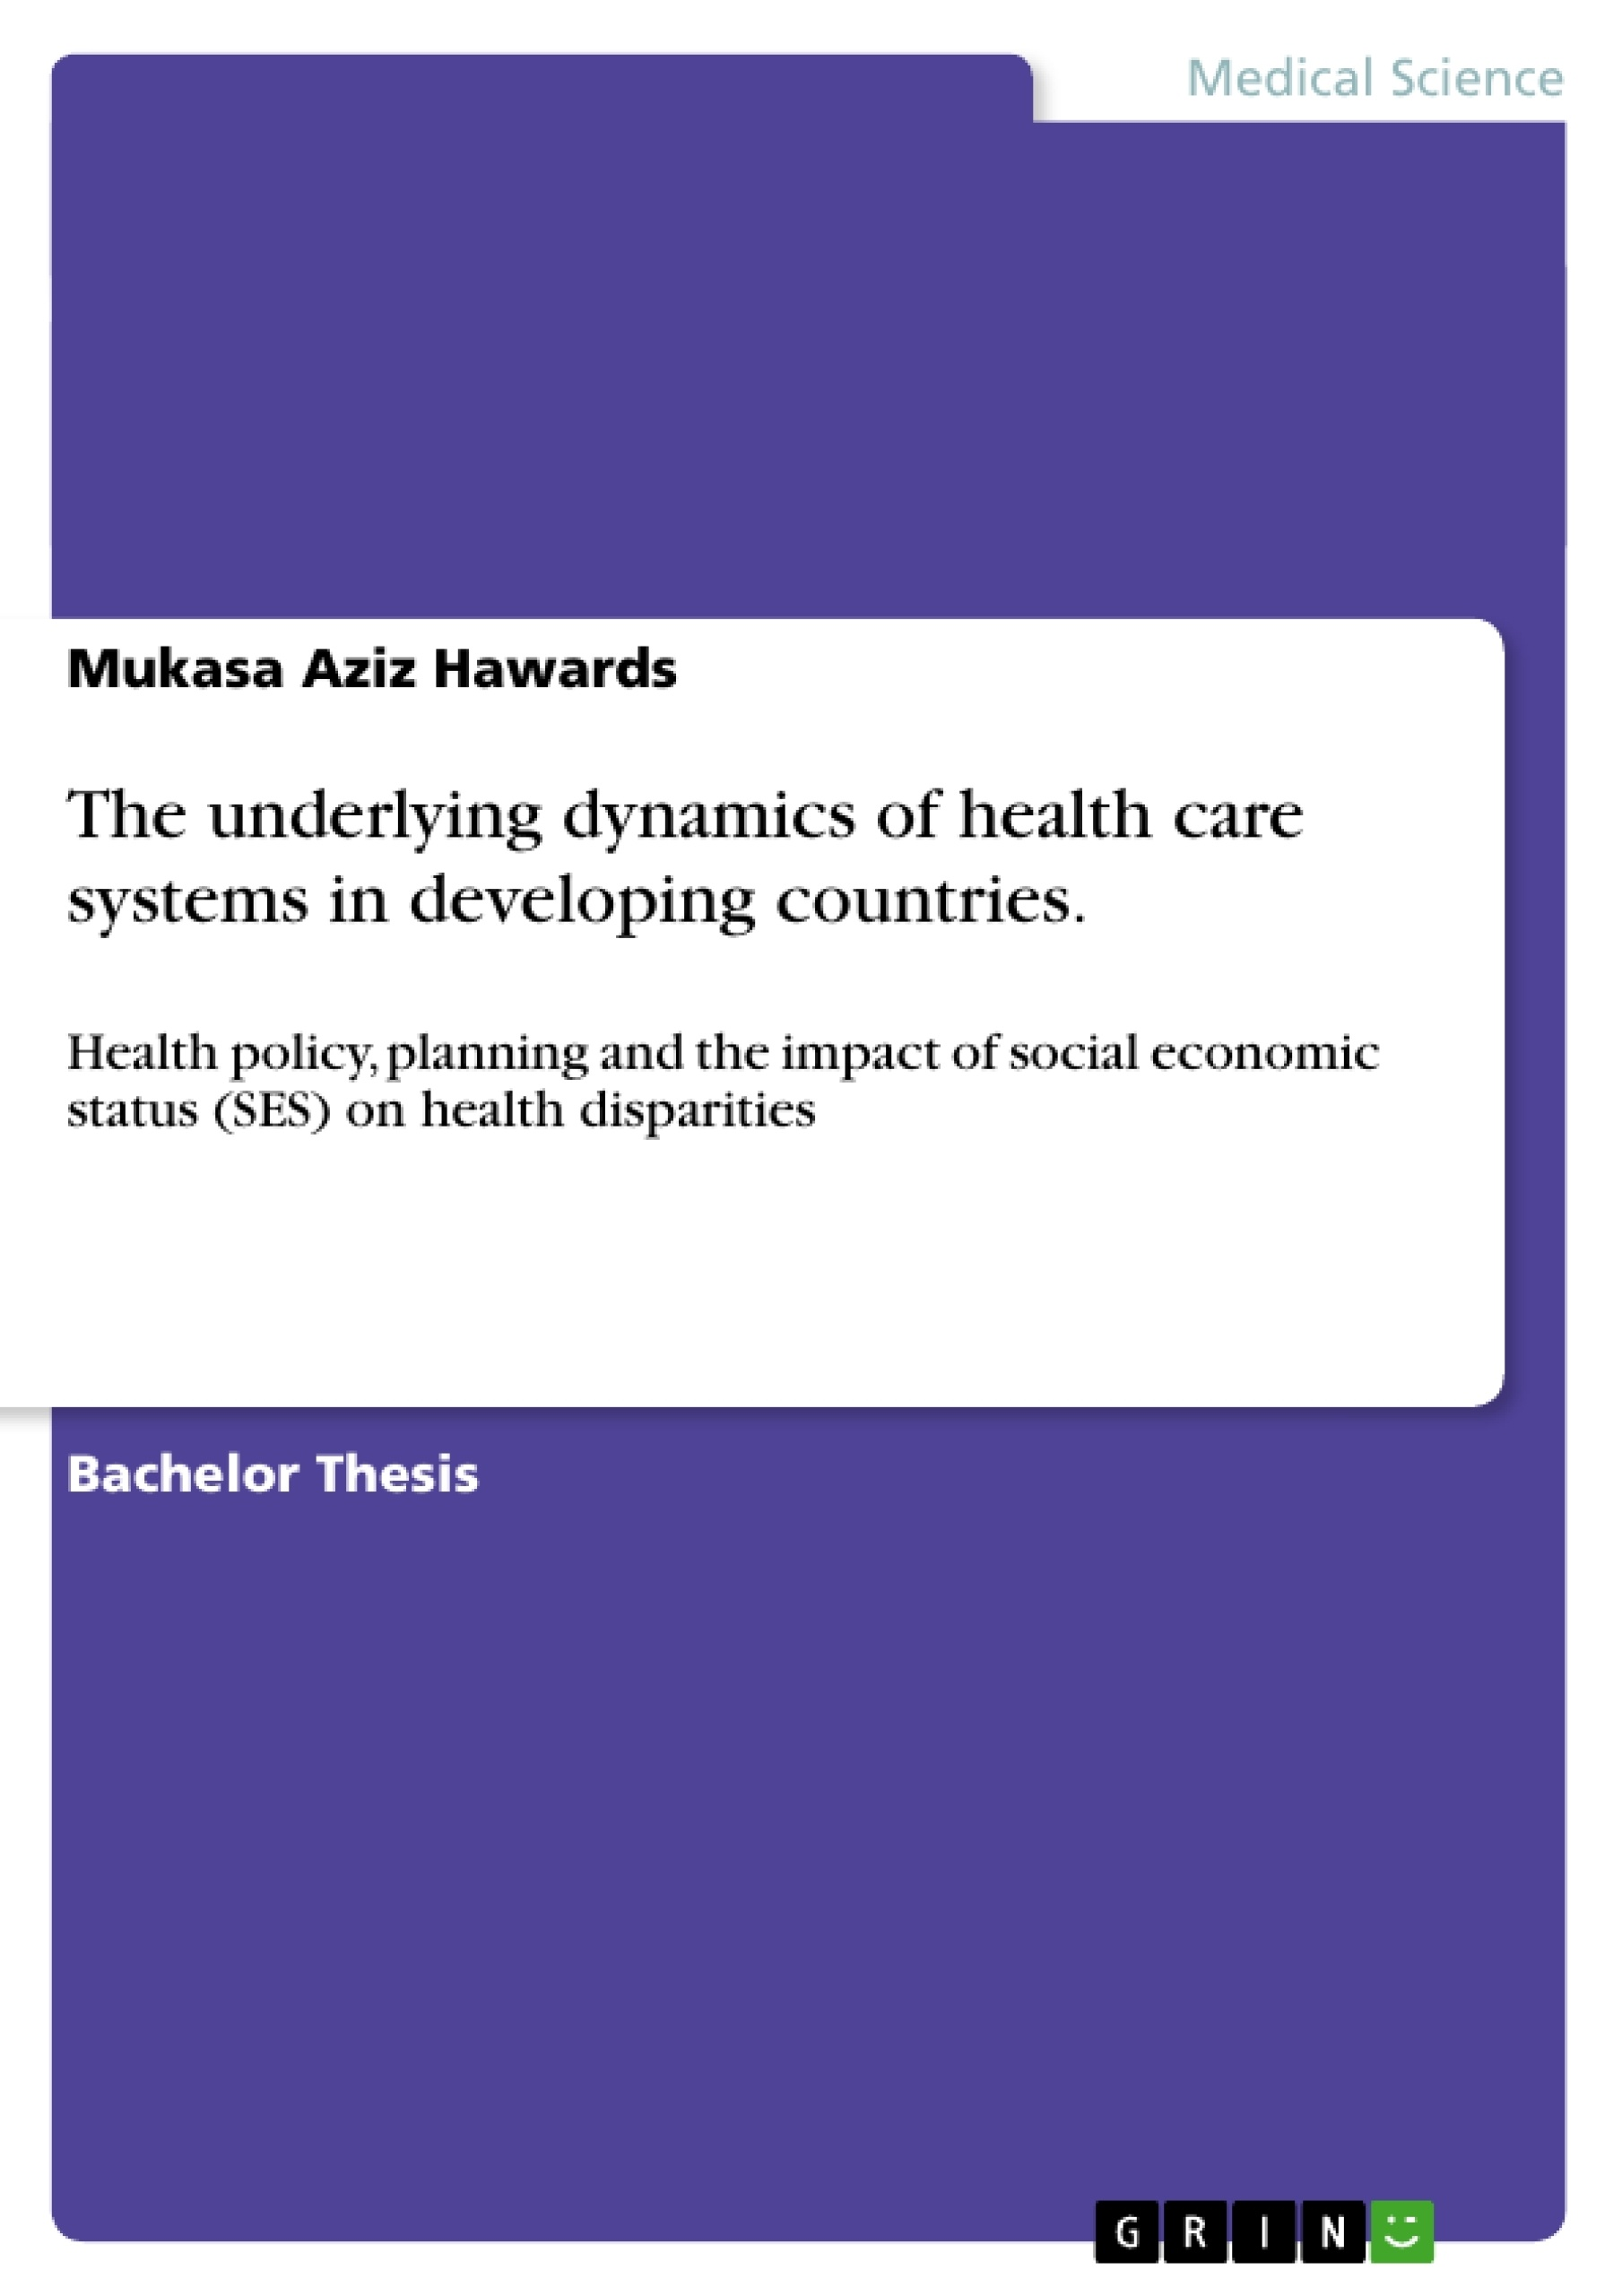 Health policy in developed countries essay